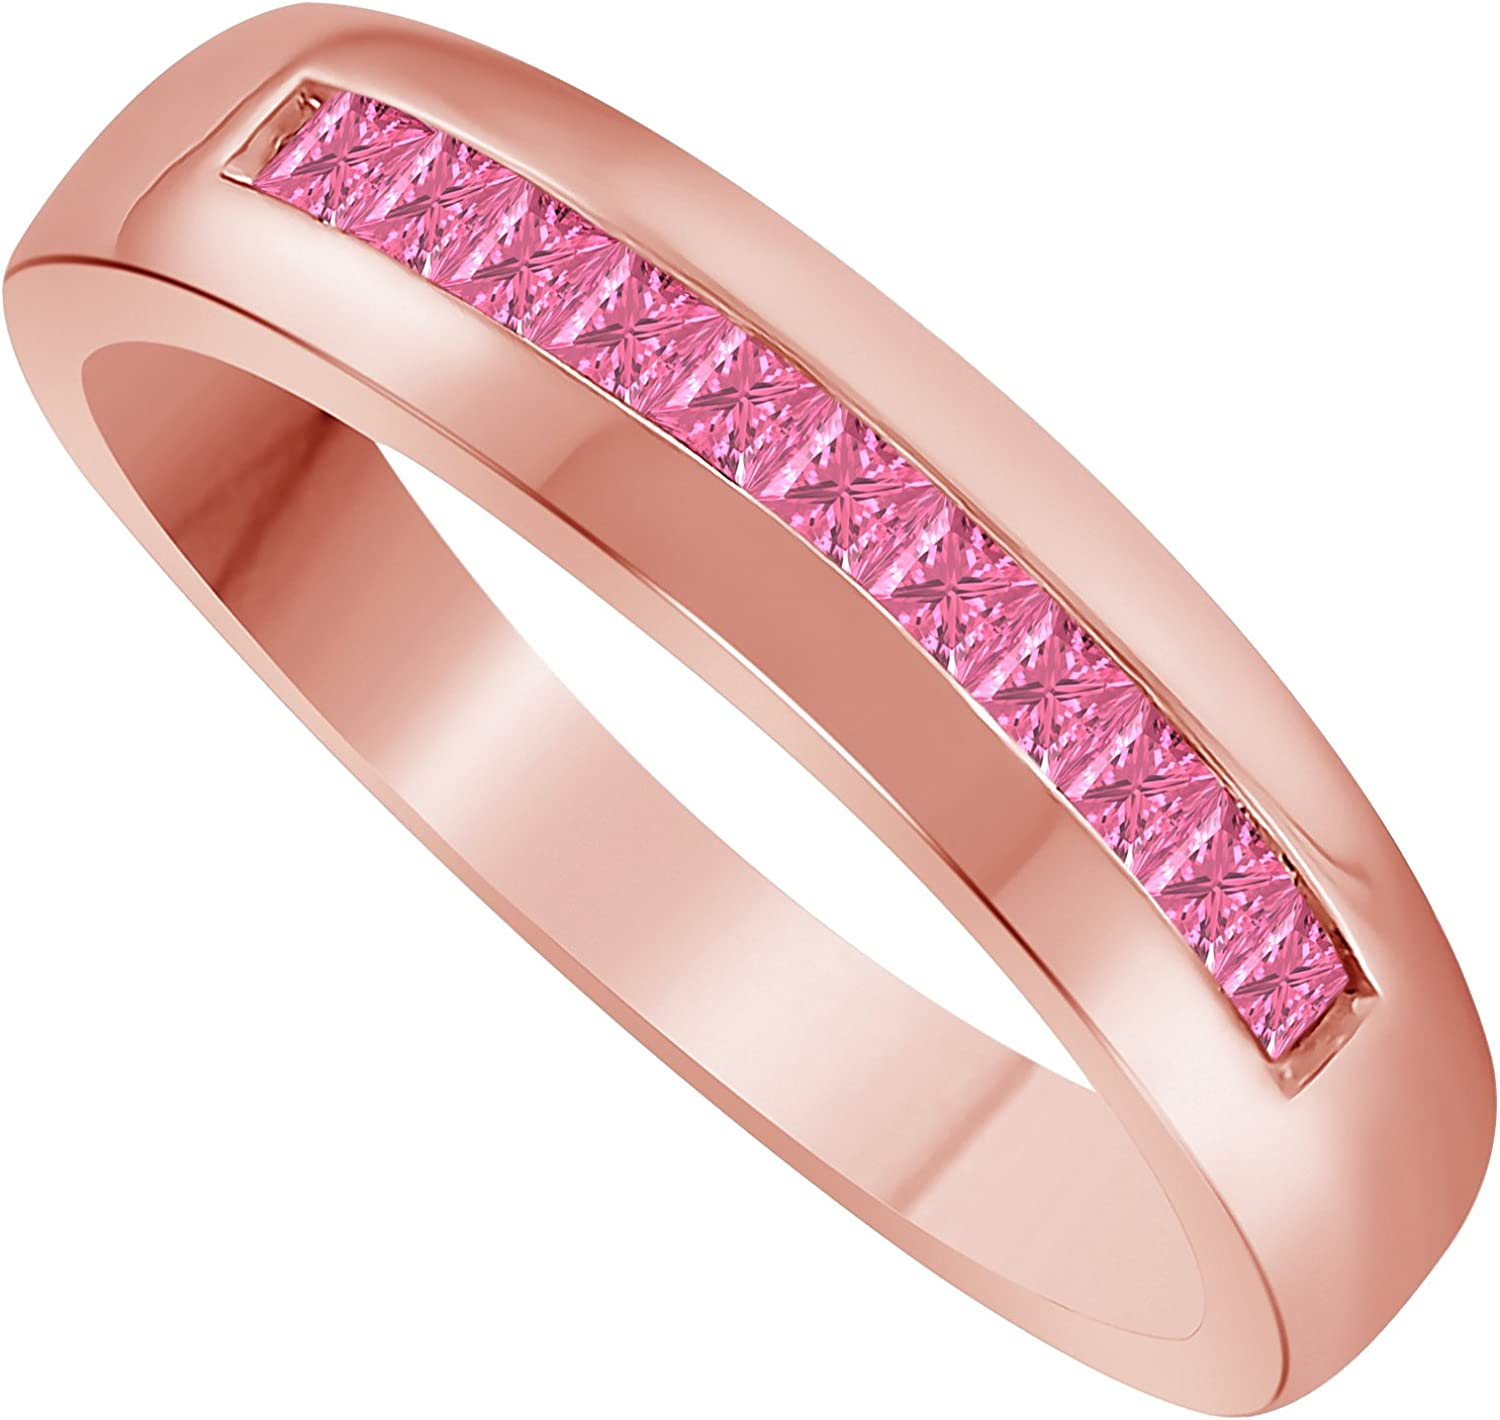 Gems and Jewels 14k Rose Gold Plated Princess-Cut Pink Sapphire Mens Wedding Band Ring